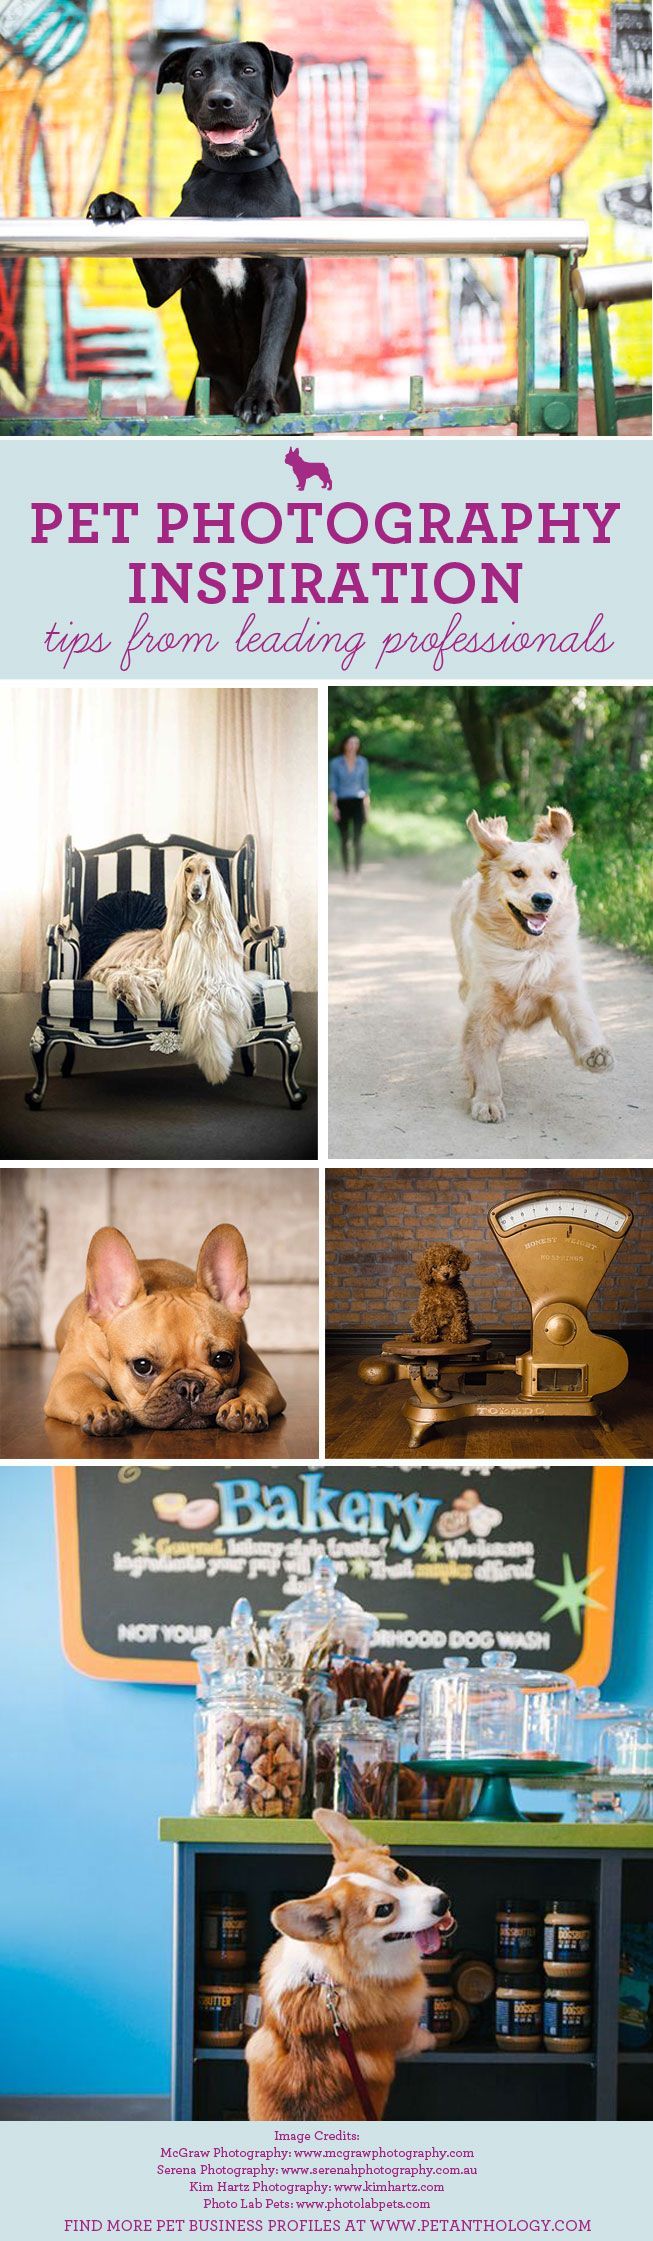 The Pet Anthology | Pet Business Profiles - Inspiration from leading Pet Photographers at www.petanthology.com  #pet #photography #tips